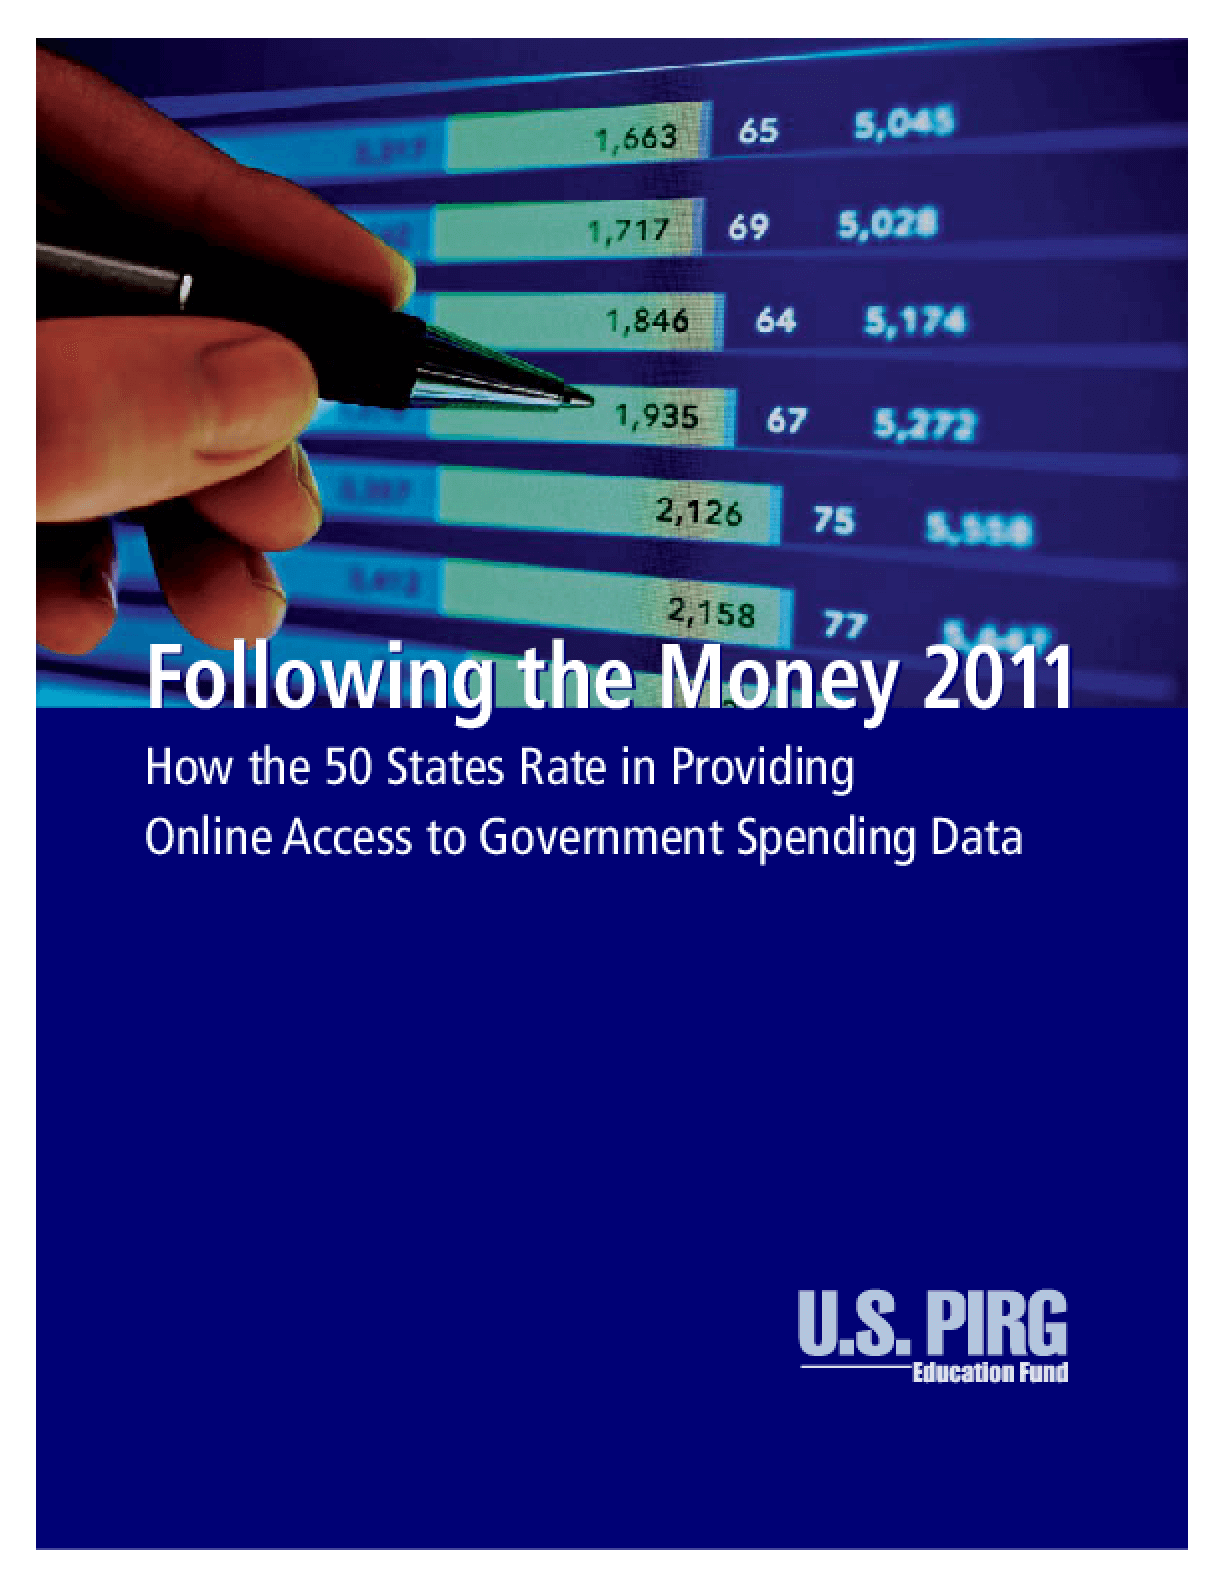 Following the Money 2011: How the 50 States Rate in Providing Online Access to Government Spending Data